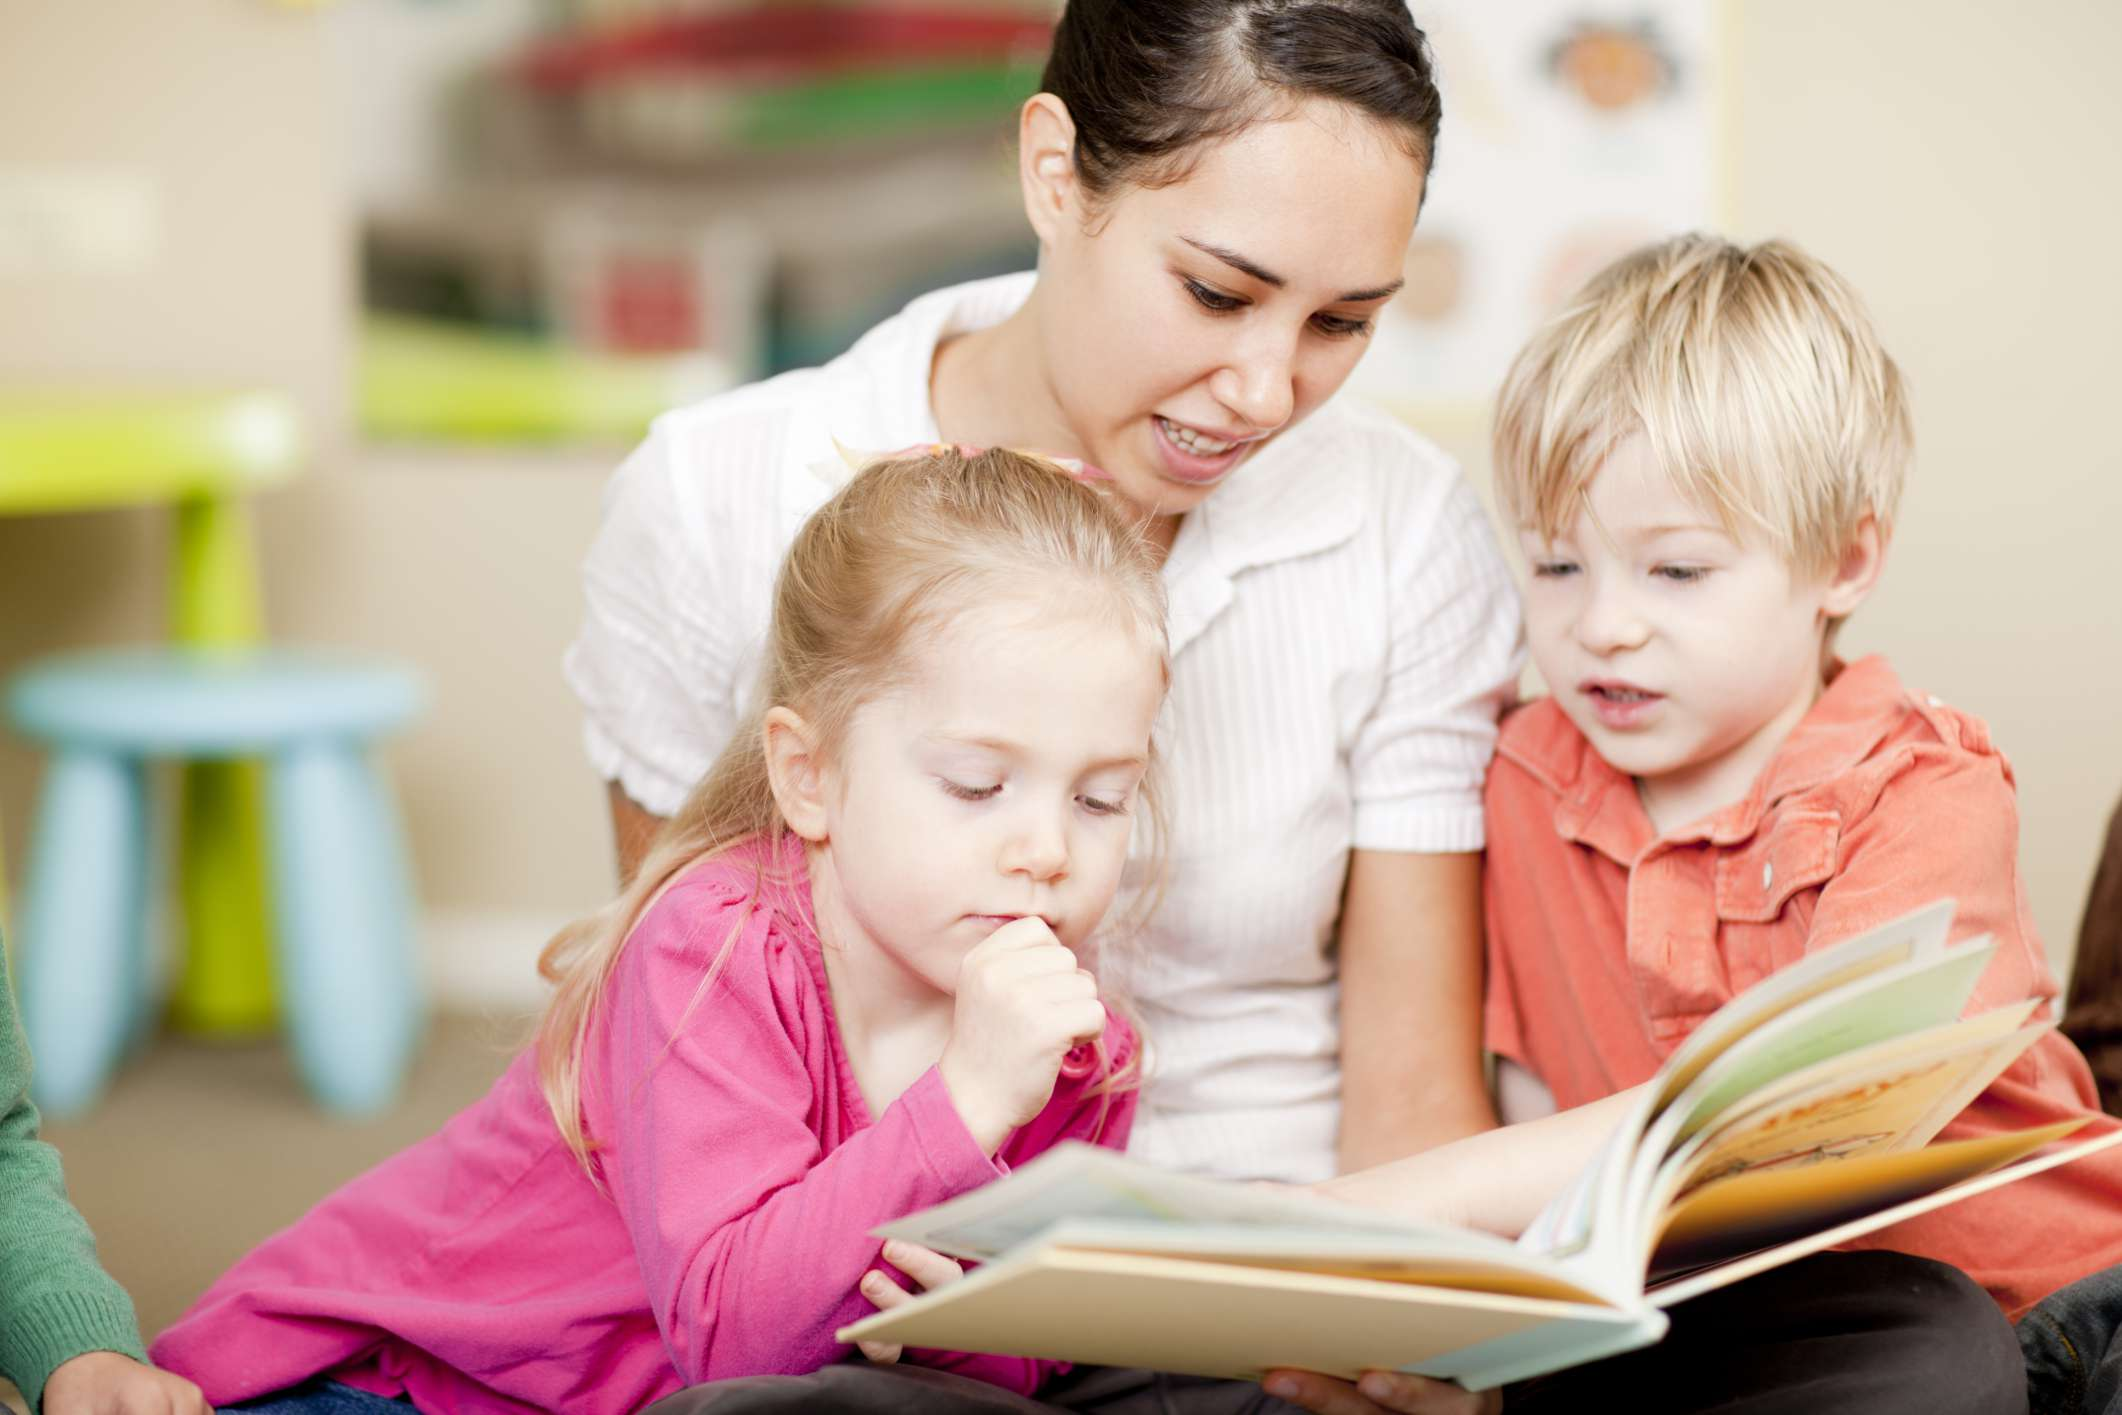 Childcare worker reading to two children